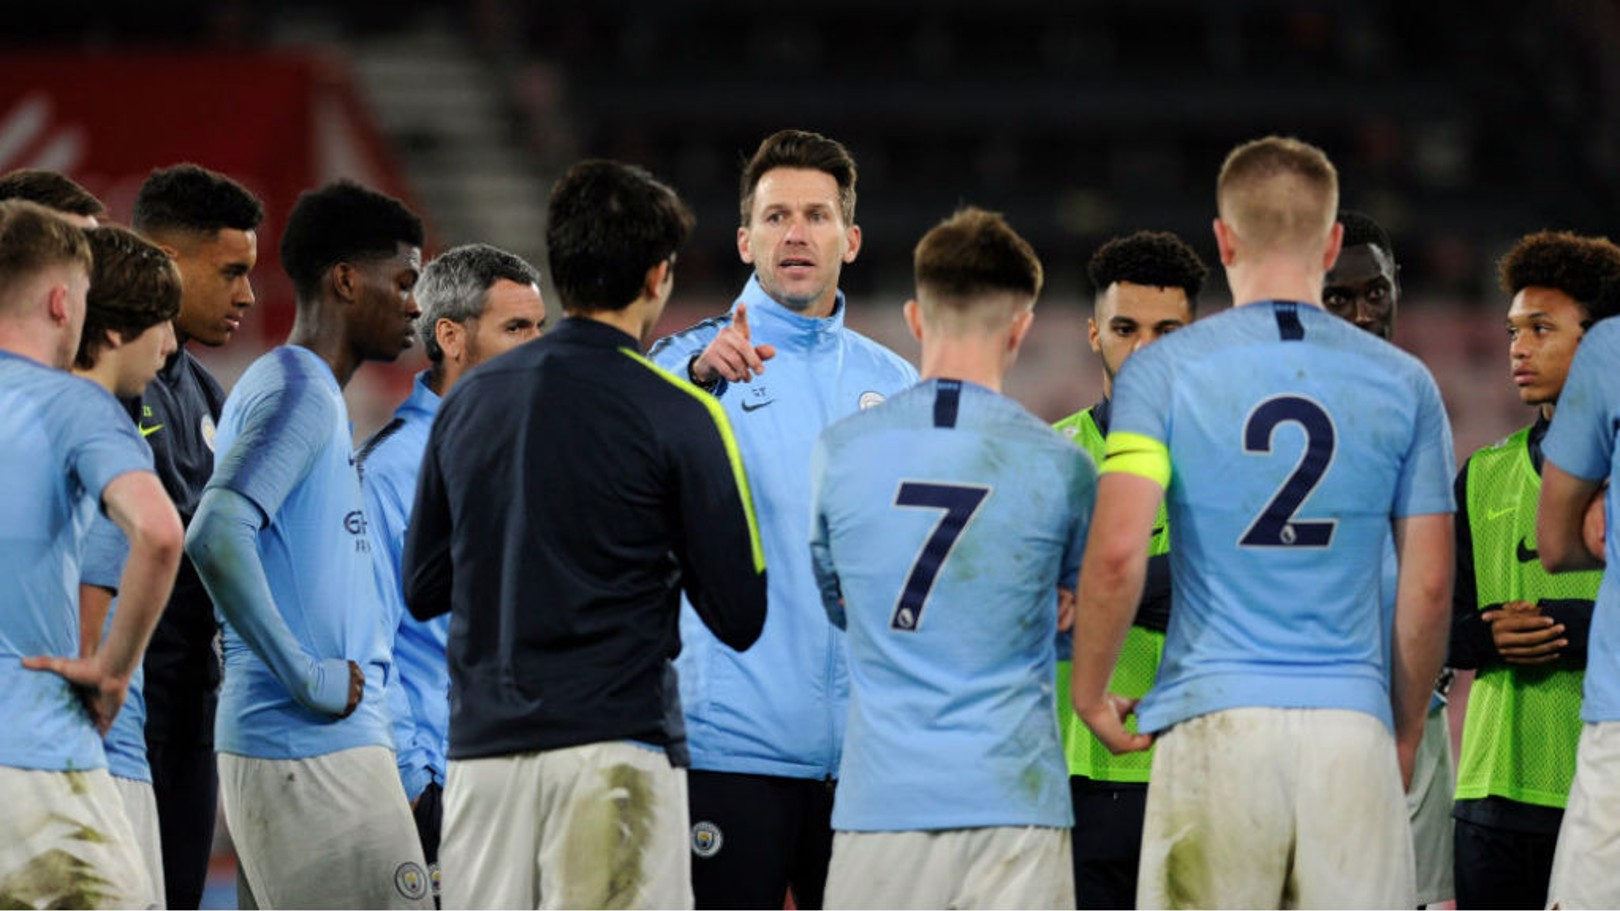 UP FOR THE CUP: Manchester City Under-18s boss Gareth Taylor says the young Blues are relishing the prospect of Monday's FA Youth Cup semi-final